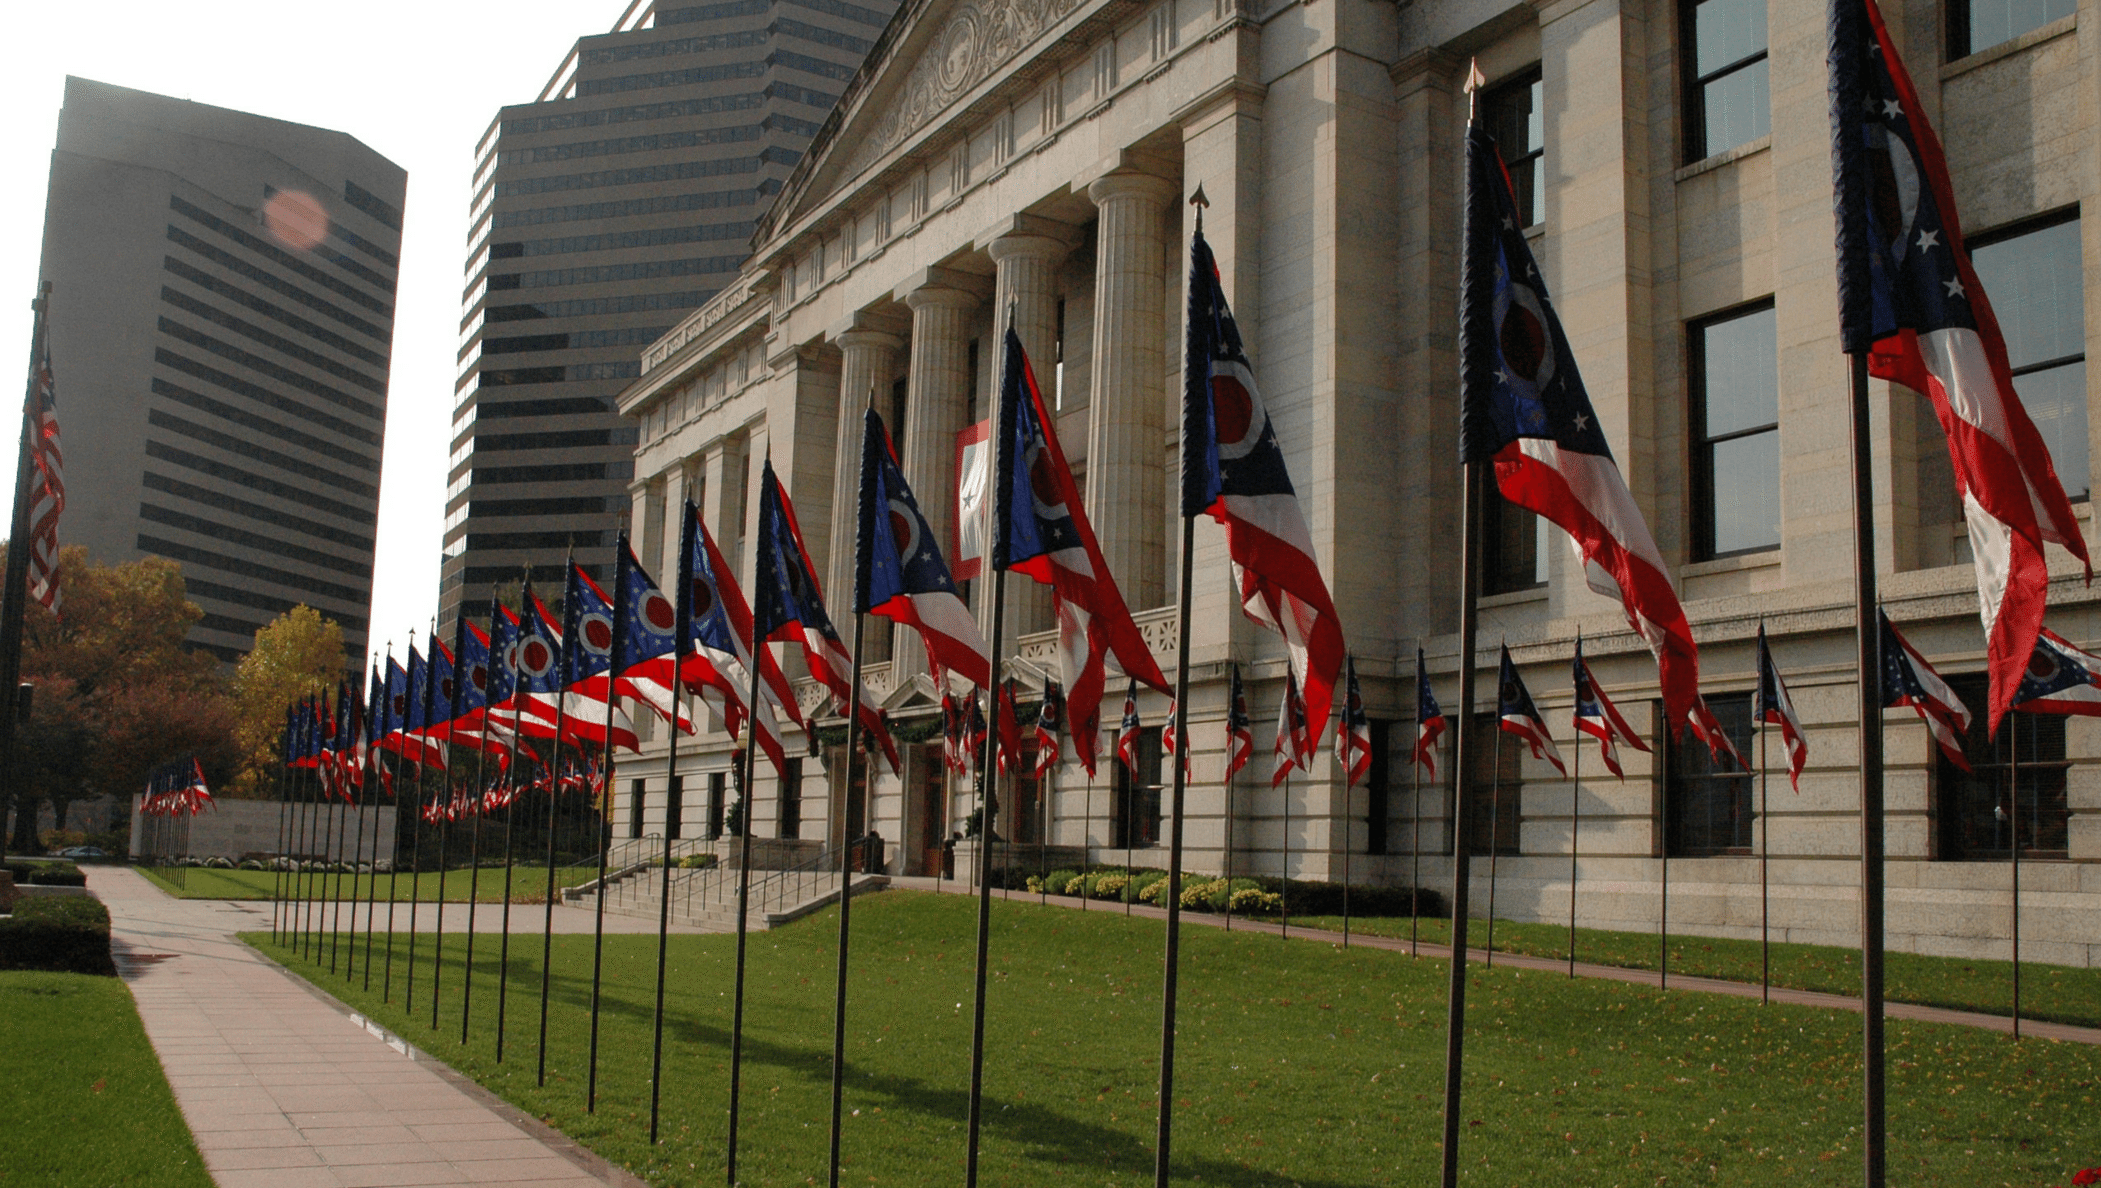 OhioStateHouse_008